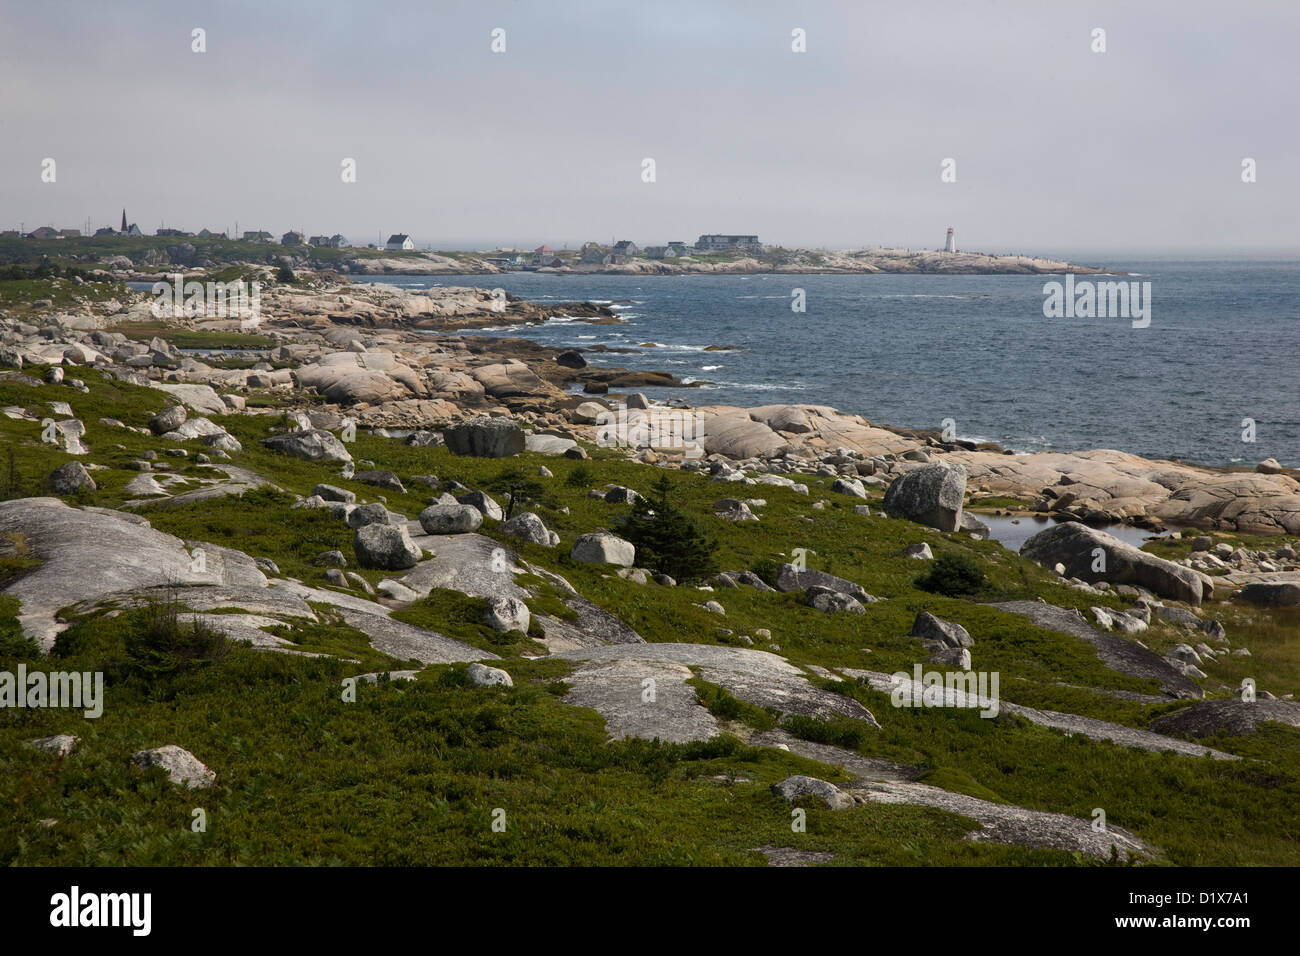 View towards Peggy's Cove from the site of the Swiss Air disaster memorial site - Stock Image